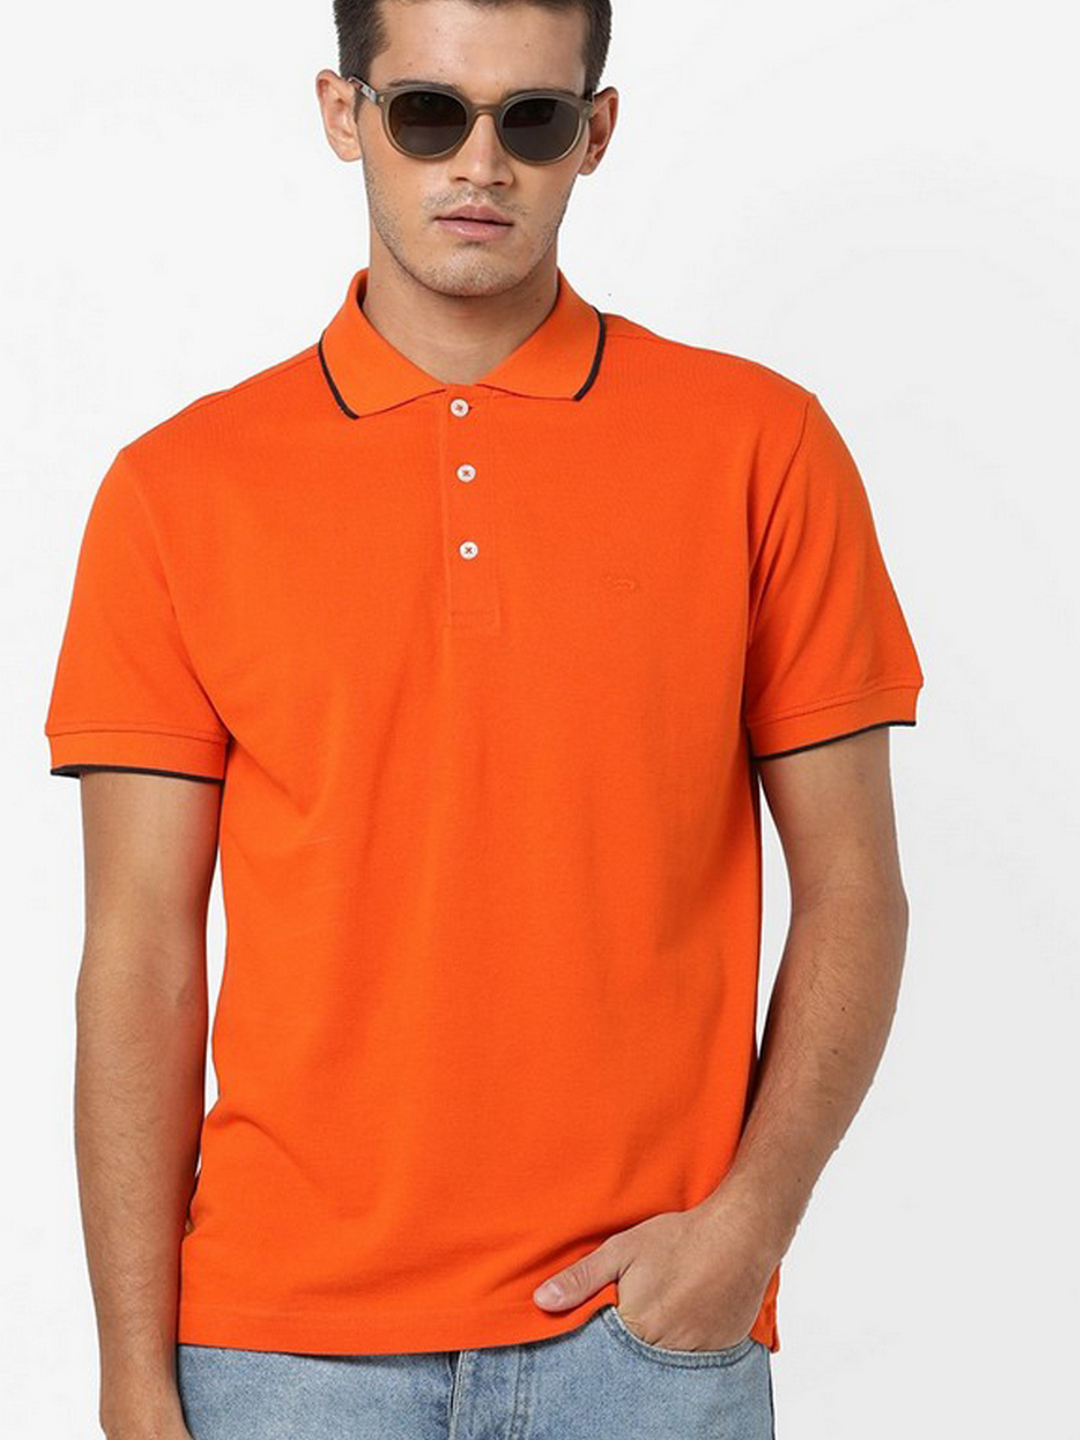 Men's Ralph/r solid orange polo t-shirt